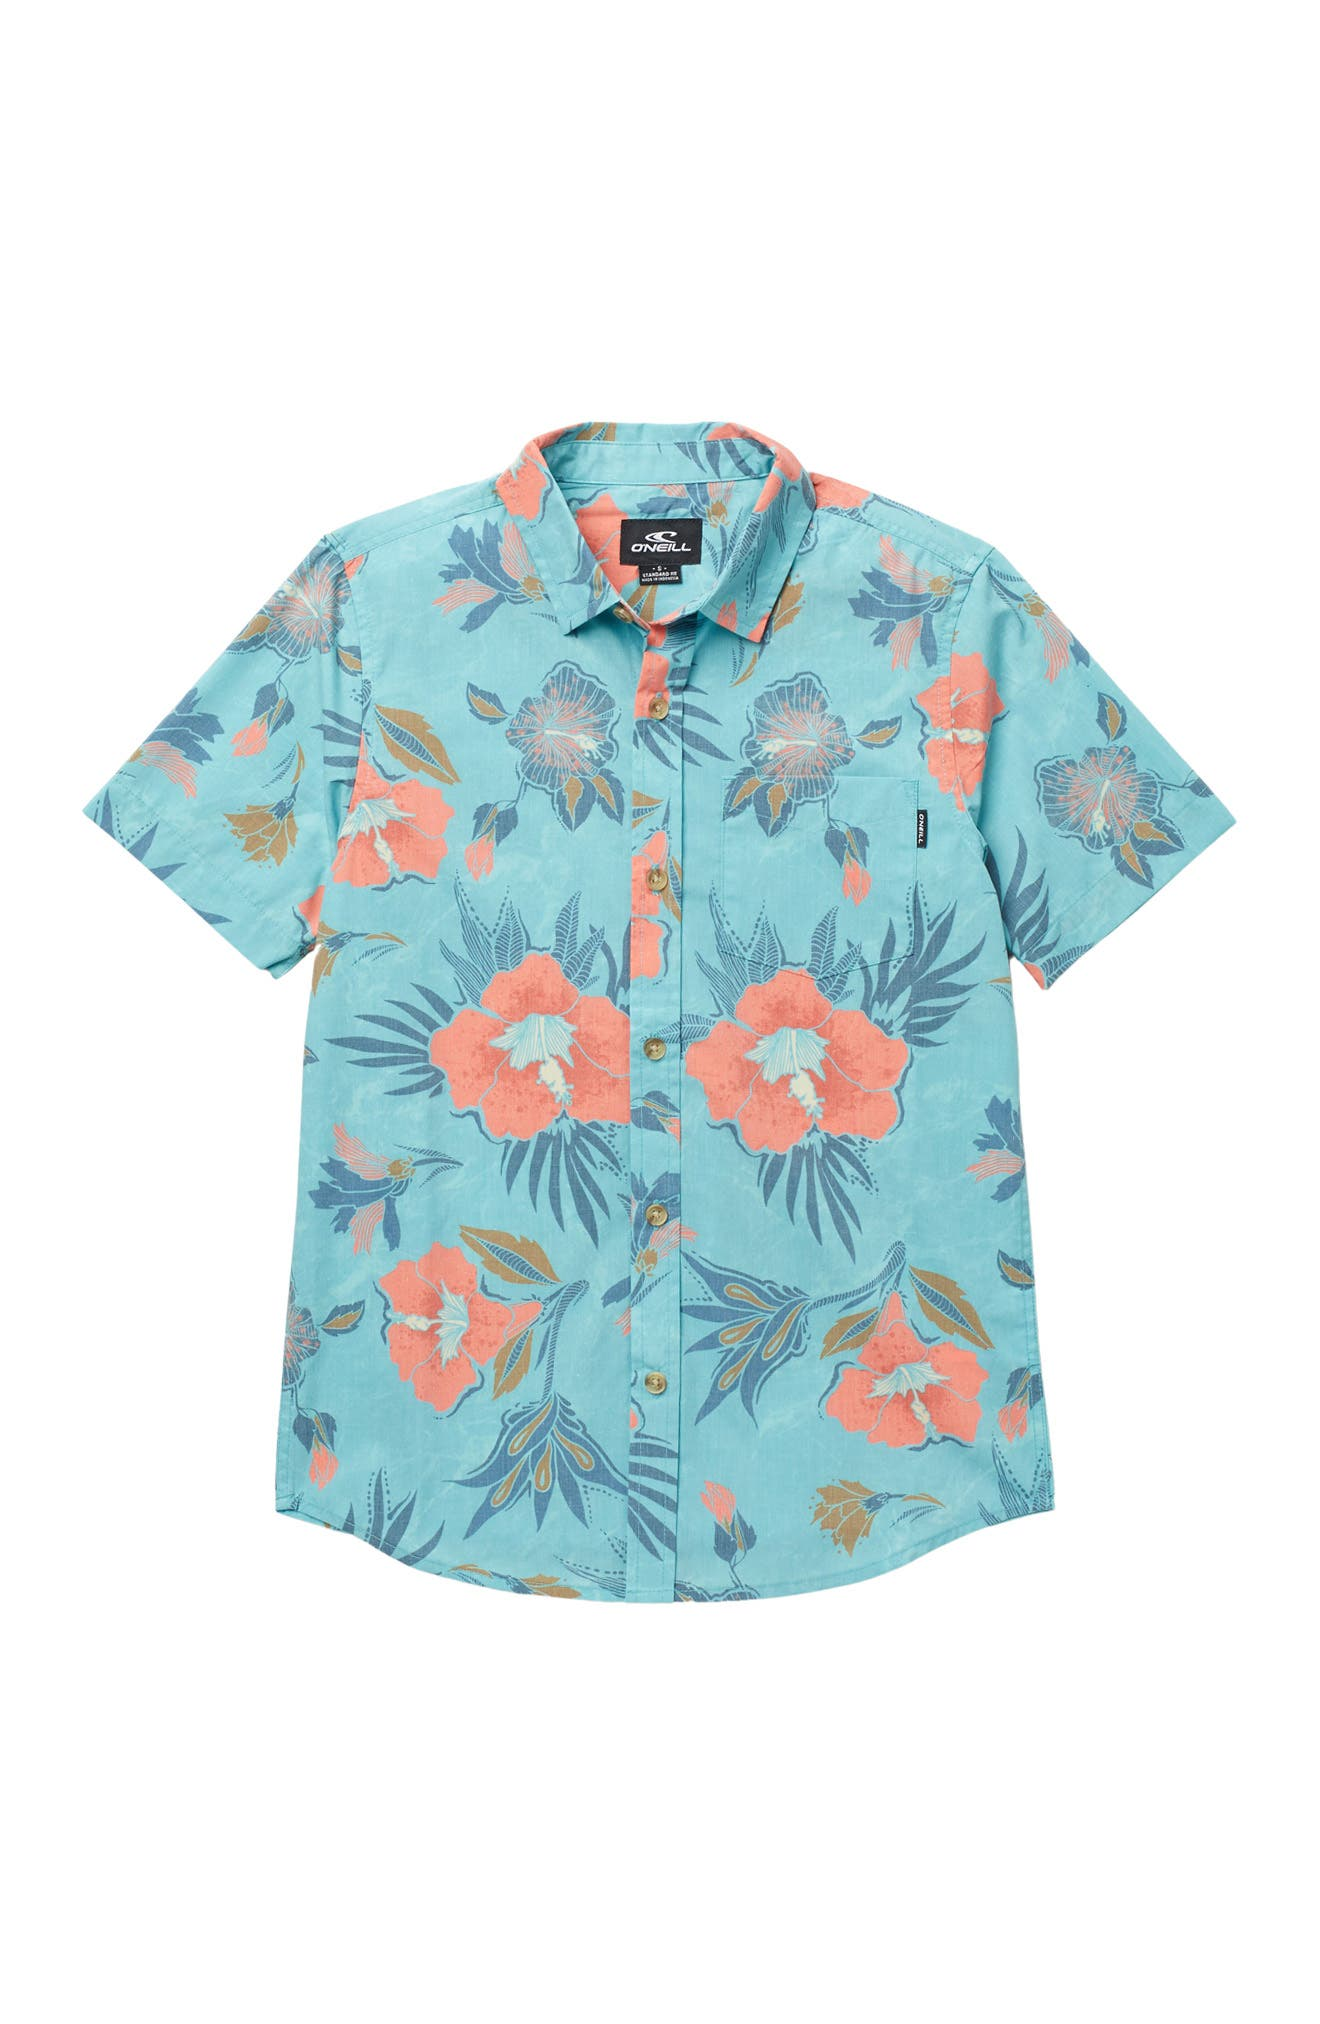 Image of O'Neill Foundation Floral Printed Shirt